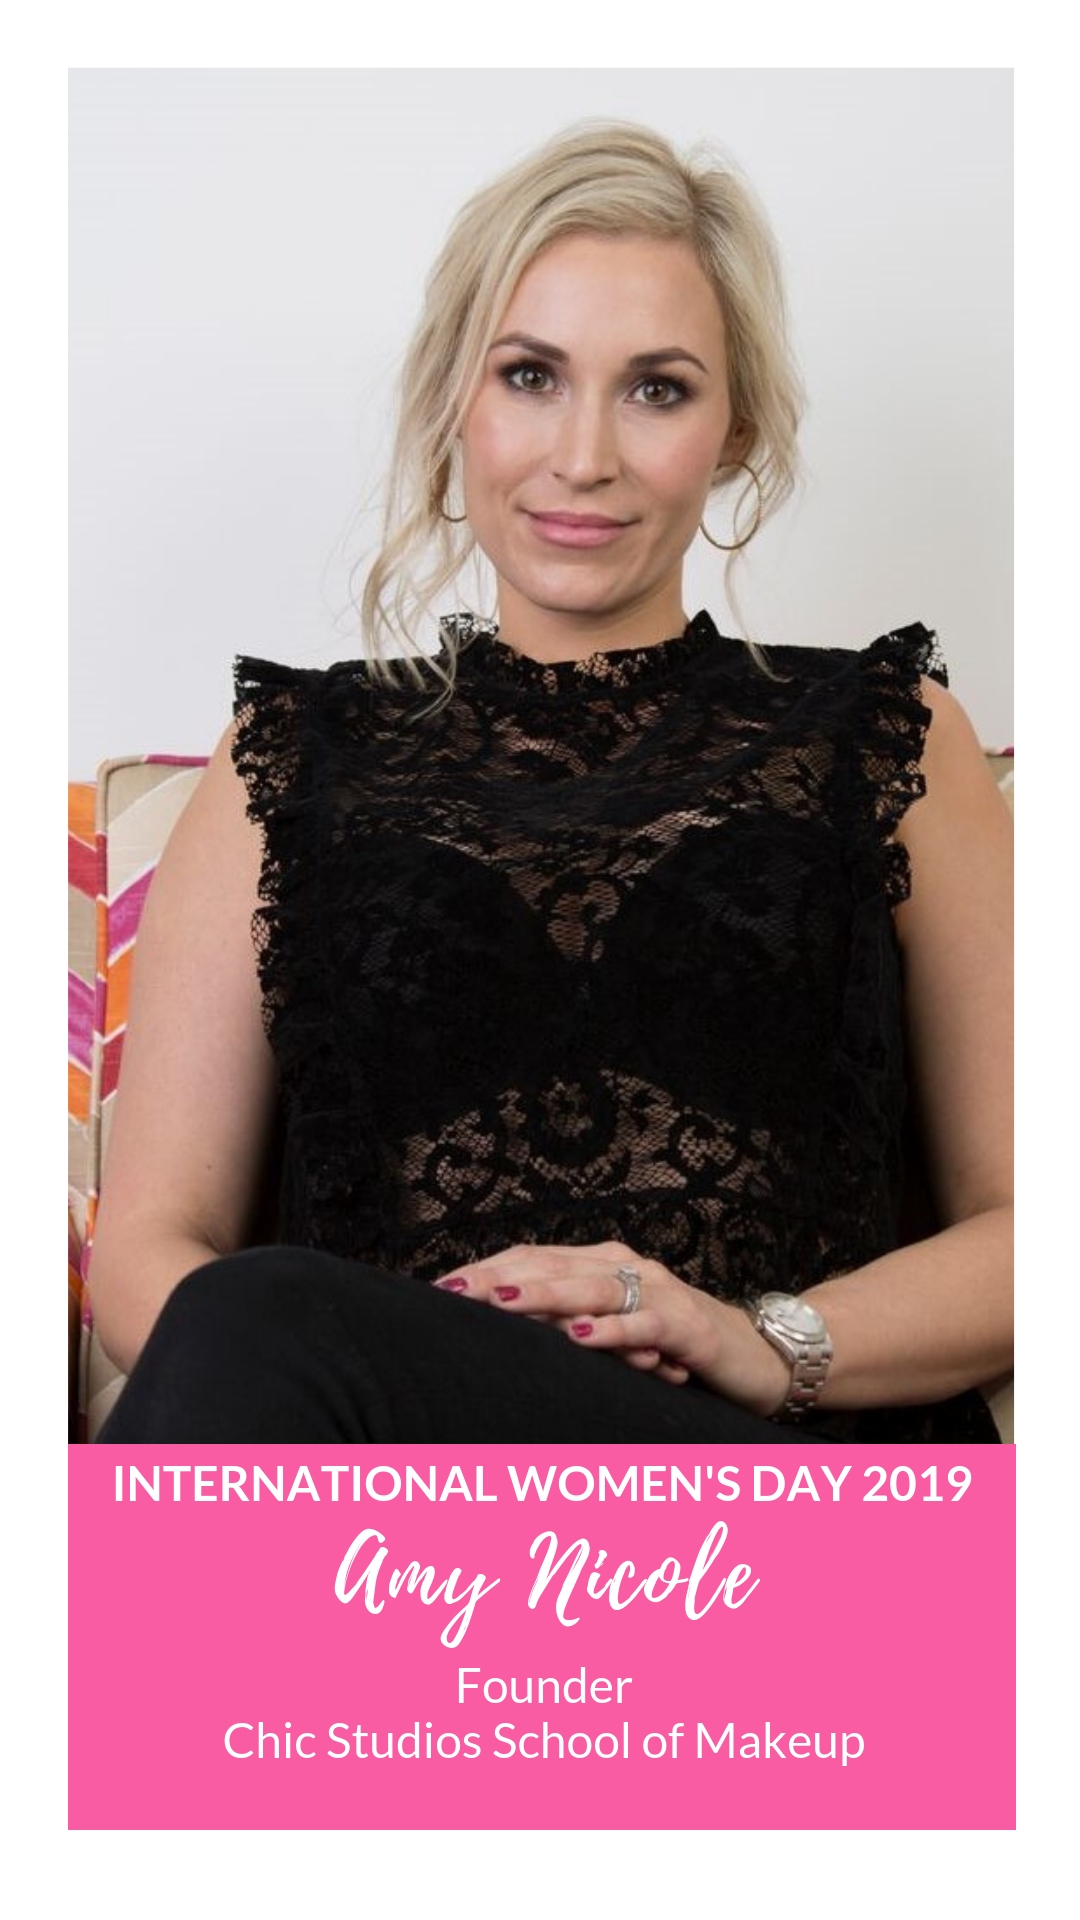 International Women's Day - Amy Nicole